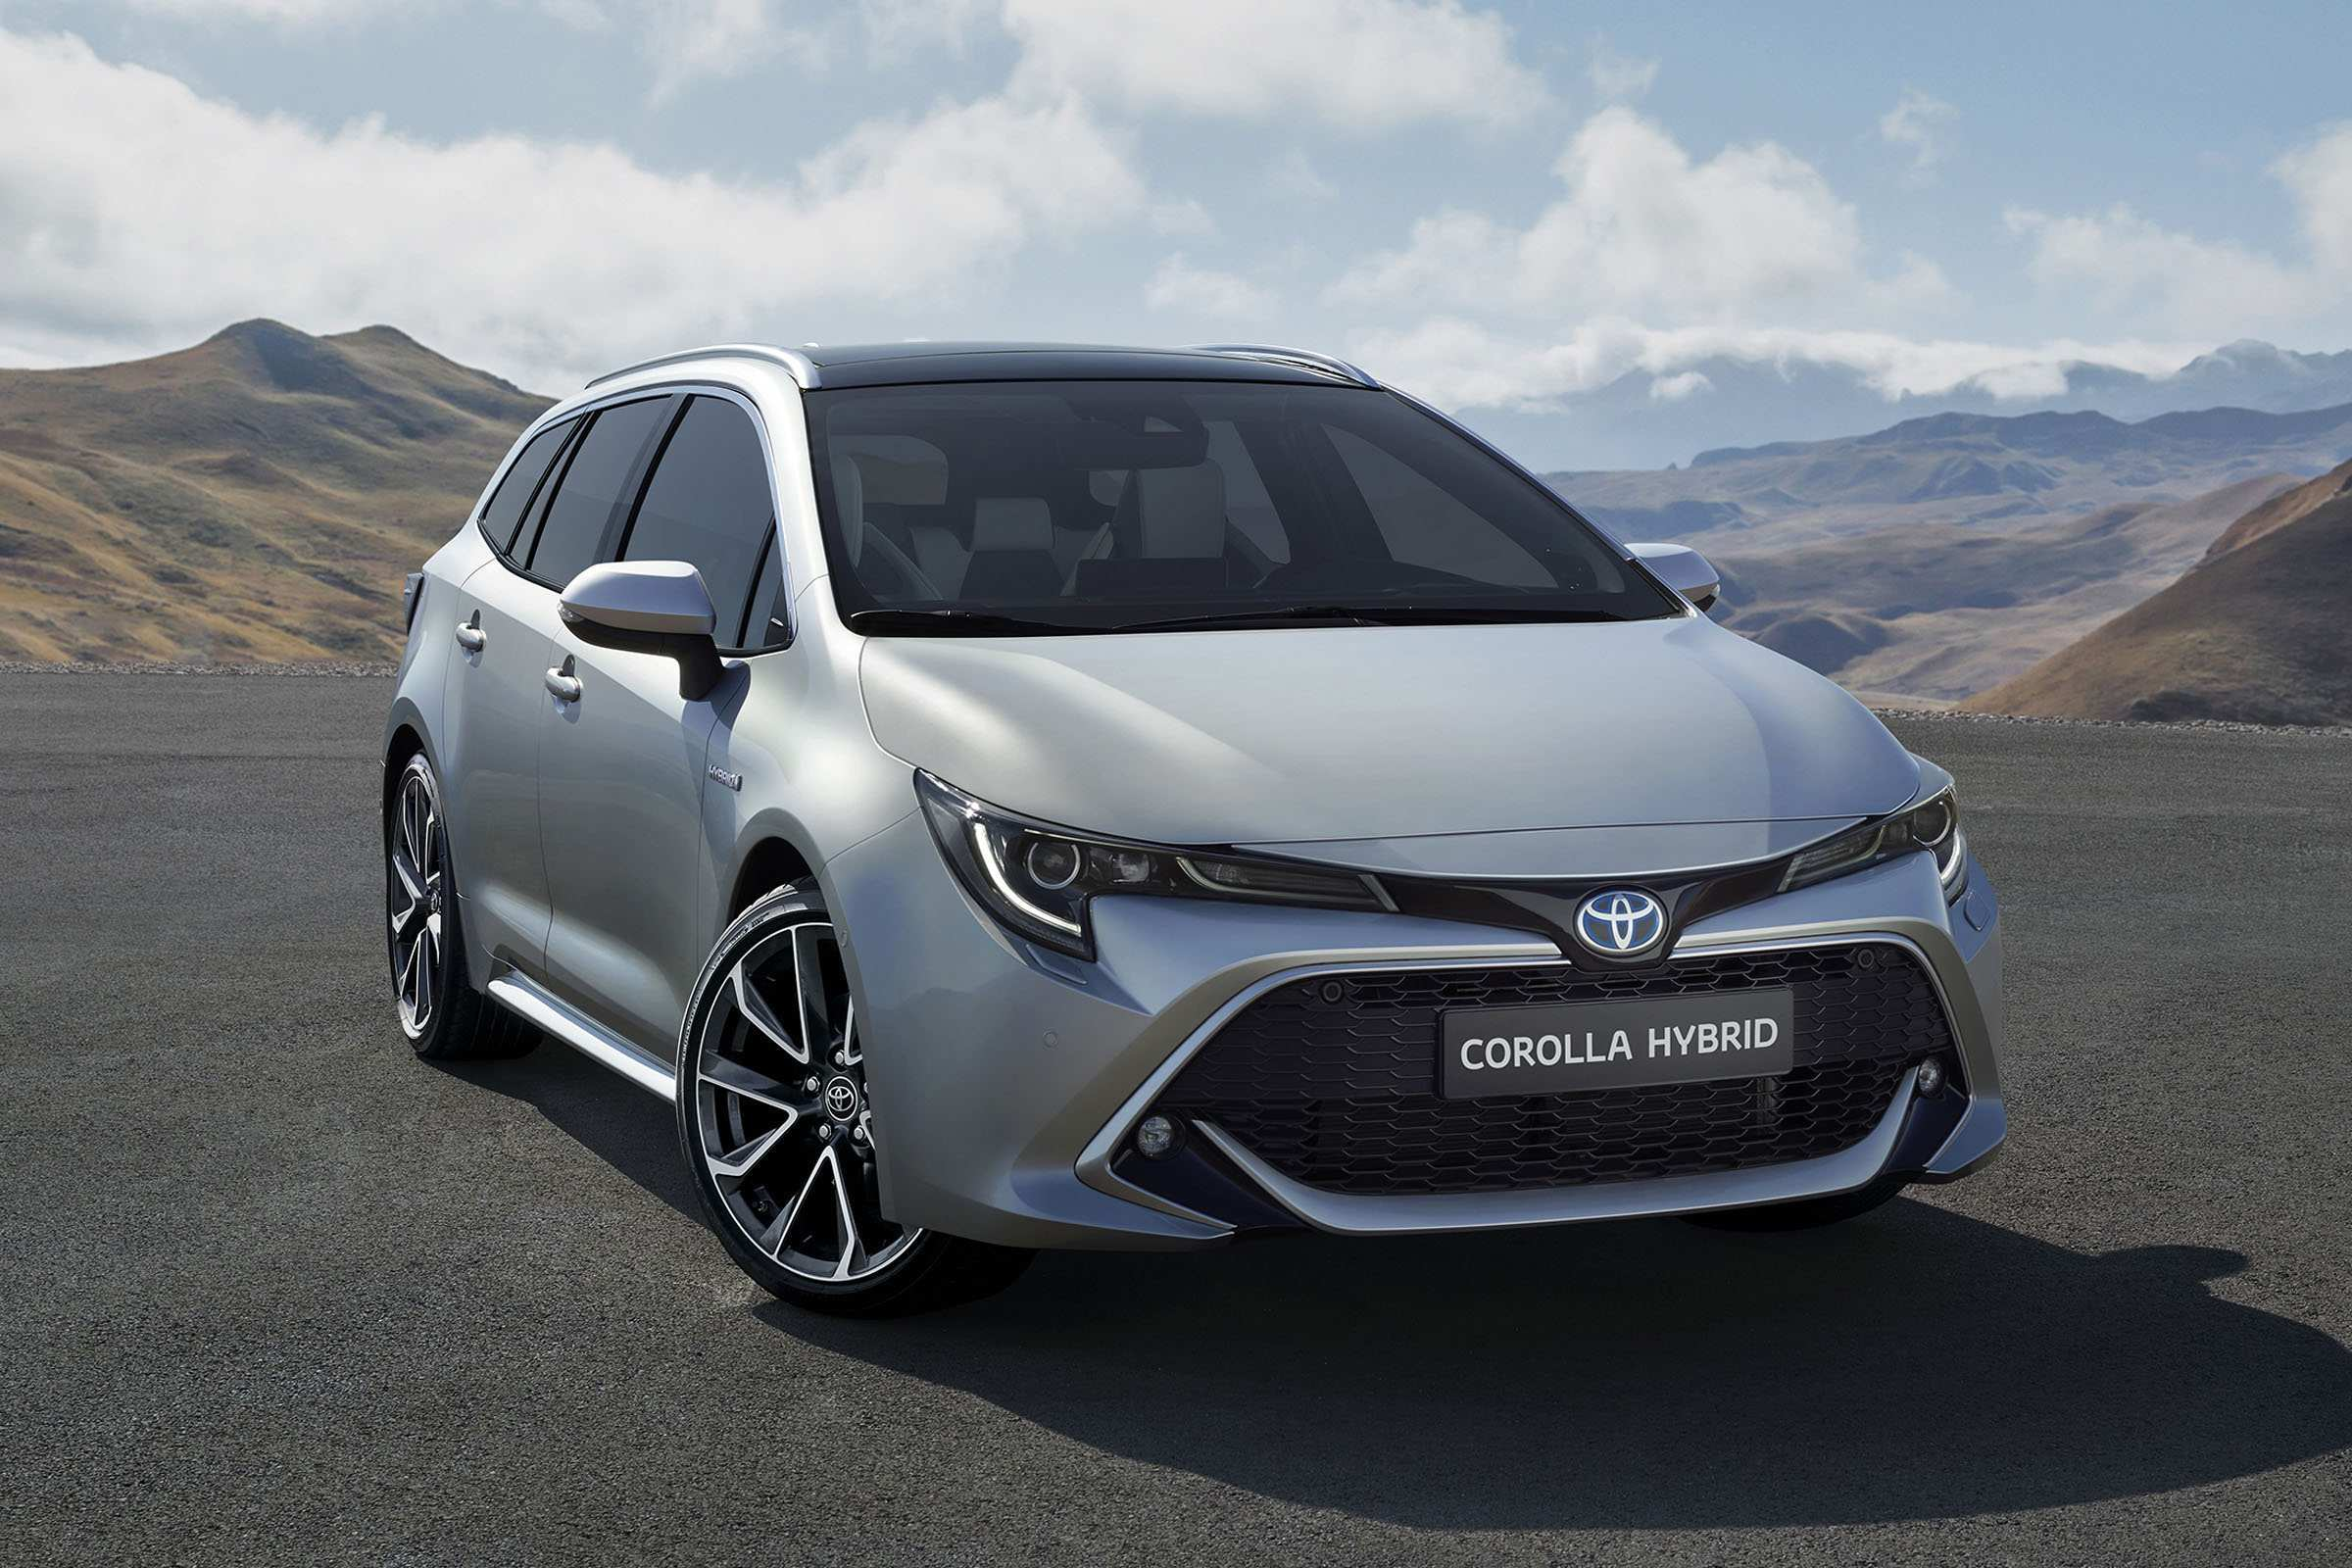 50 Gallery of The Toyota 2019 Europa Picture Release Date And Review Spesification by The Toyota 2019 Europa Picture Release Date And Review